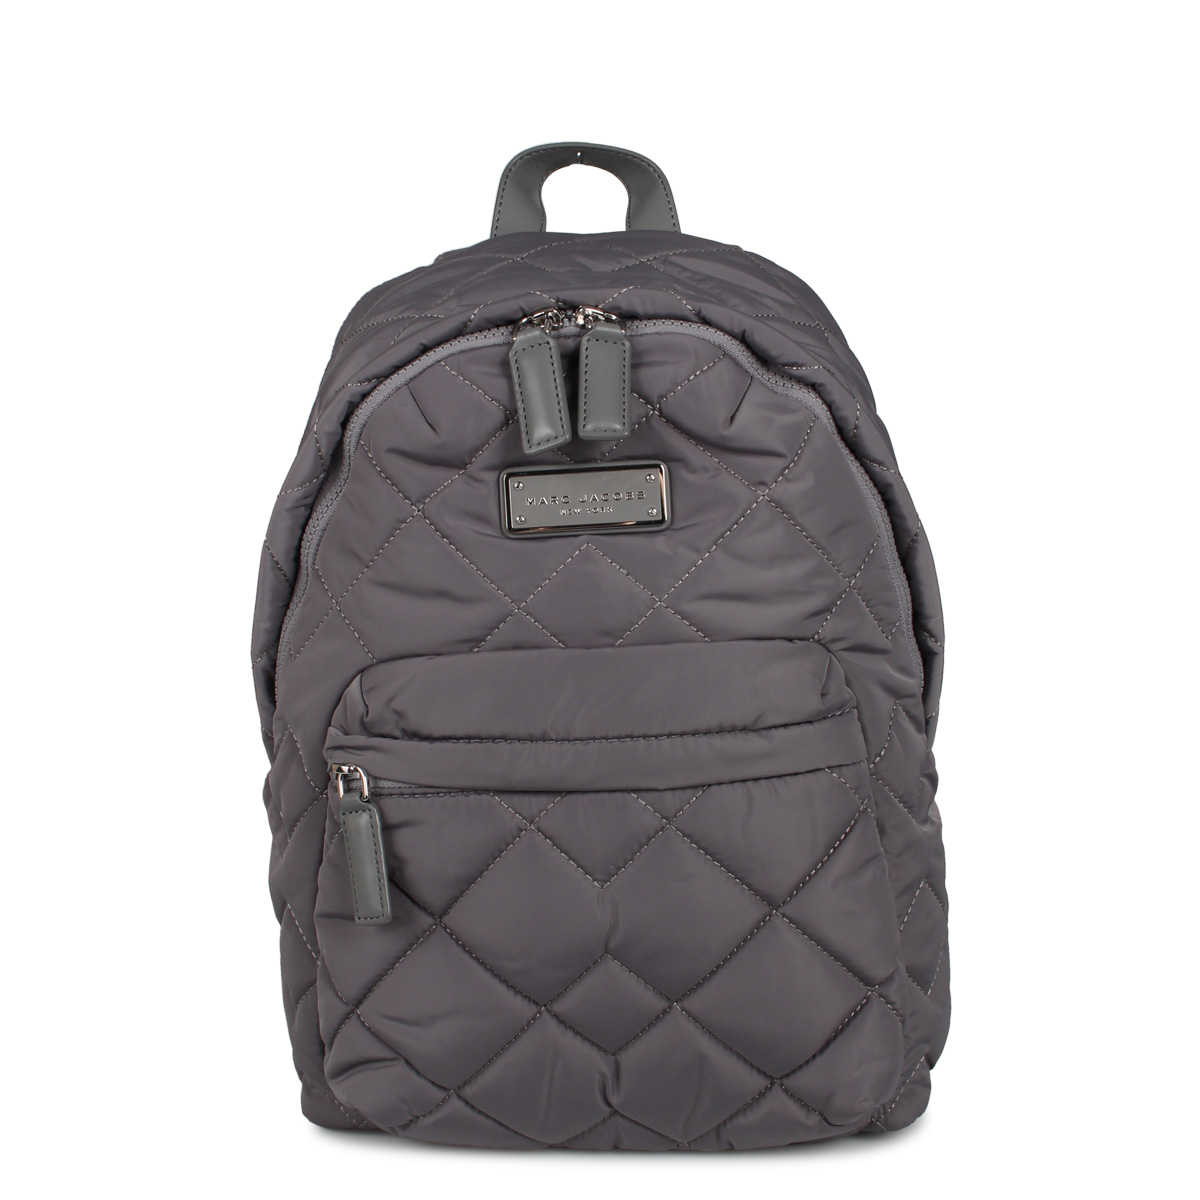 MARC JACOBS QUILTED BACKPACK マークジェイコブス リュック バッグ バックパック レディース グレー M0011321-097